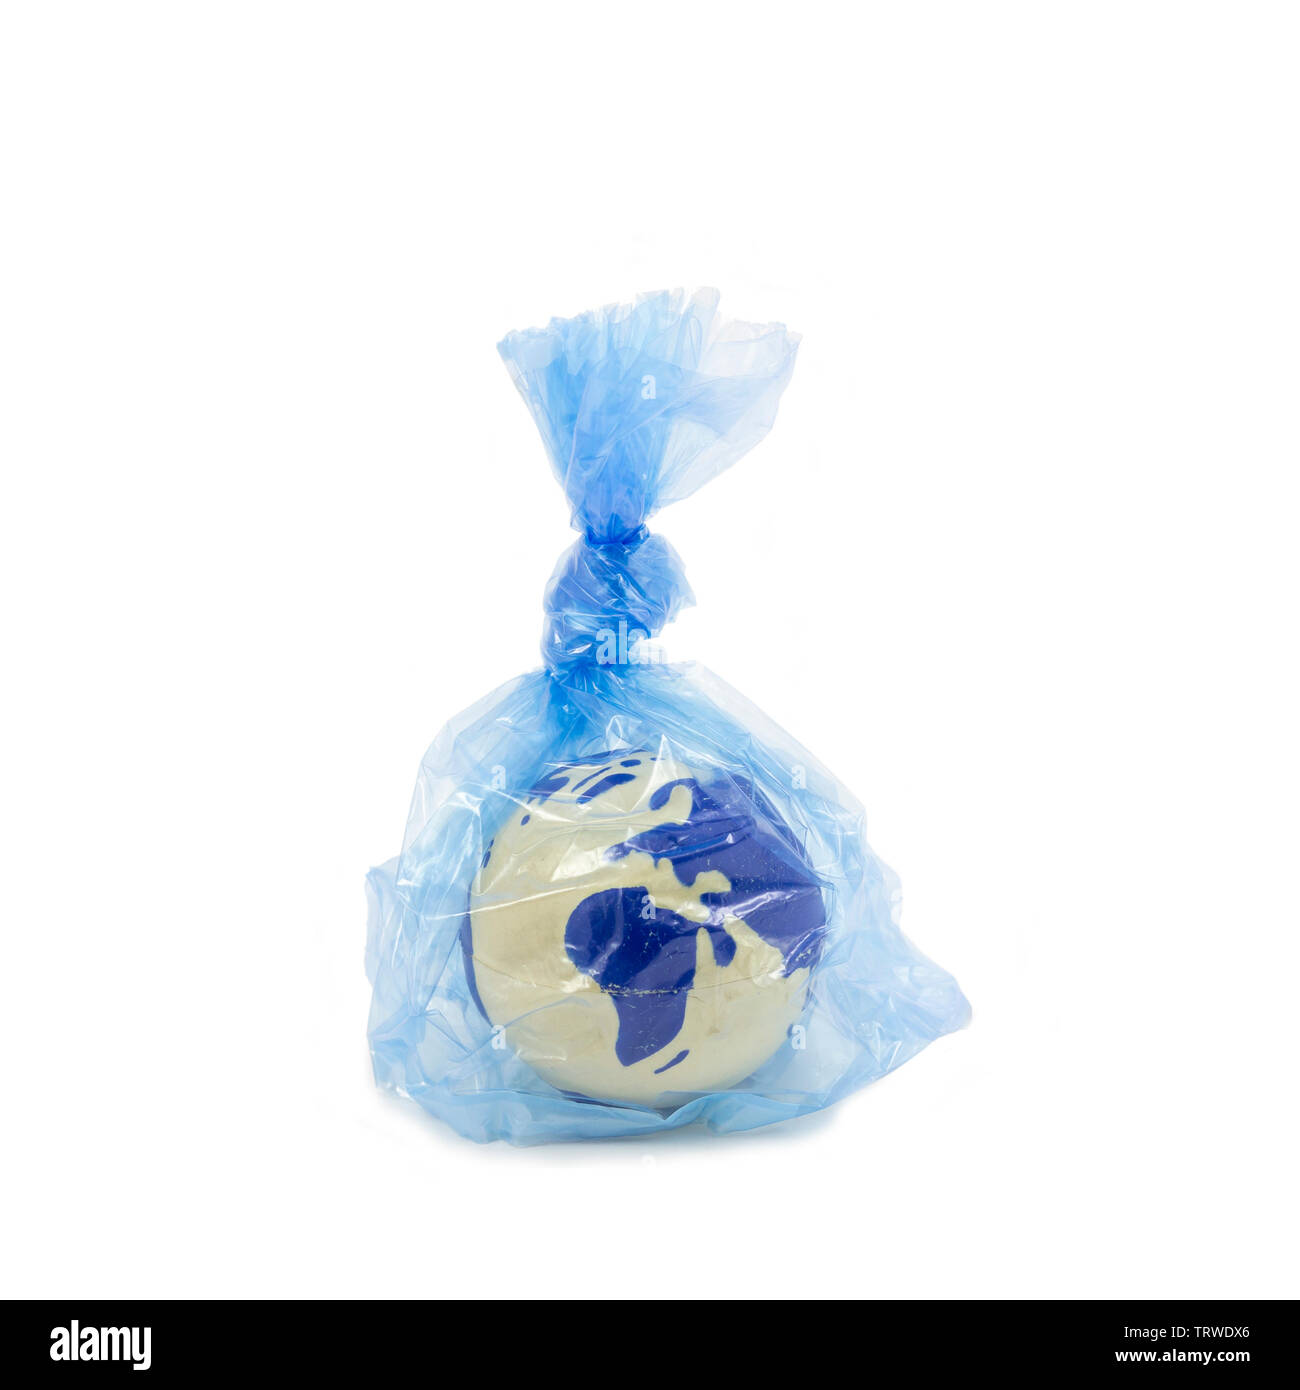 Earth globe inside a plastic bag, pollution and warming concept - Stock Image